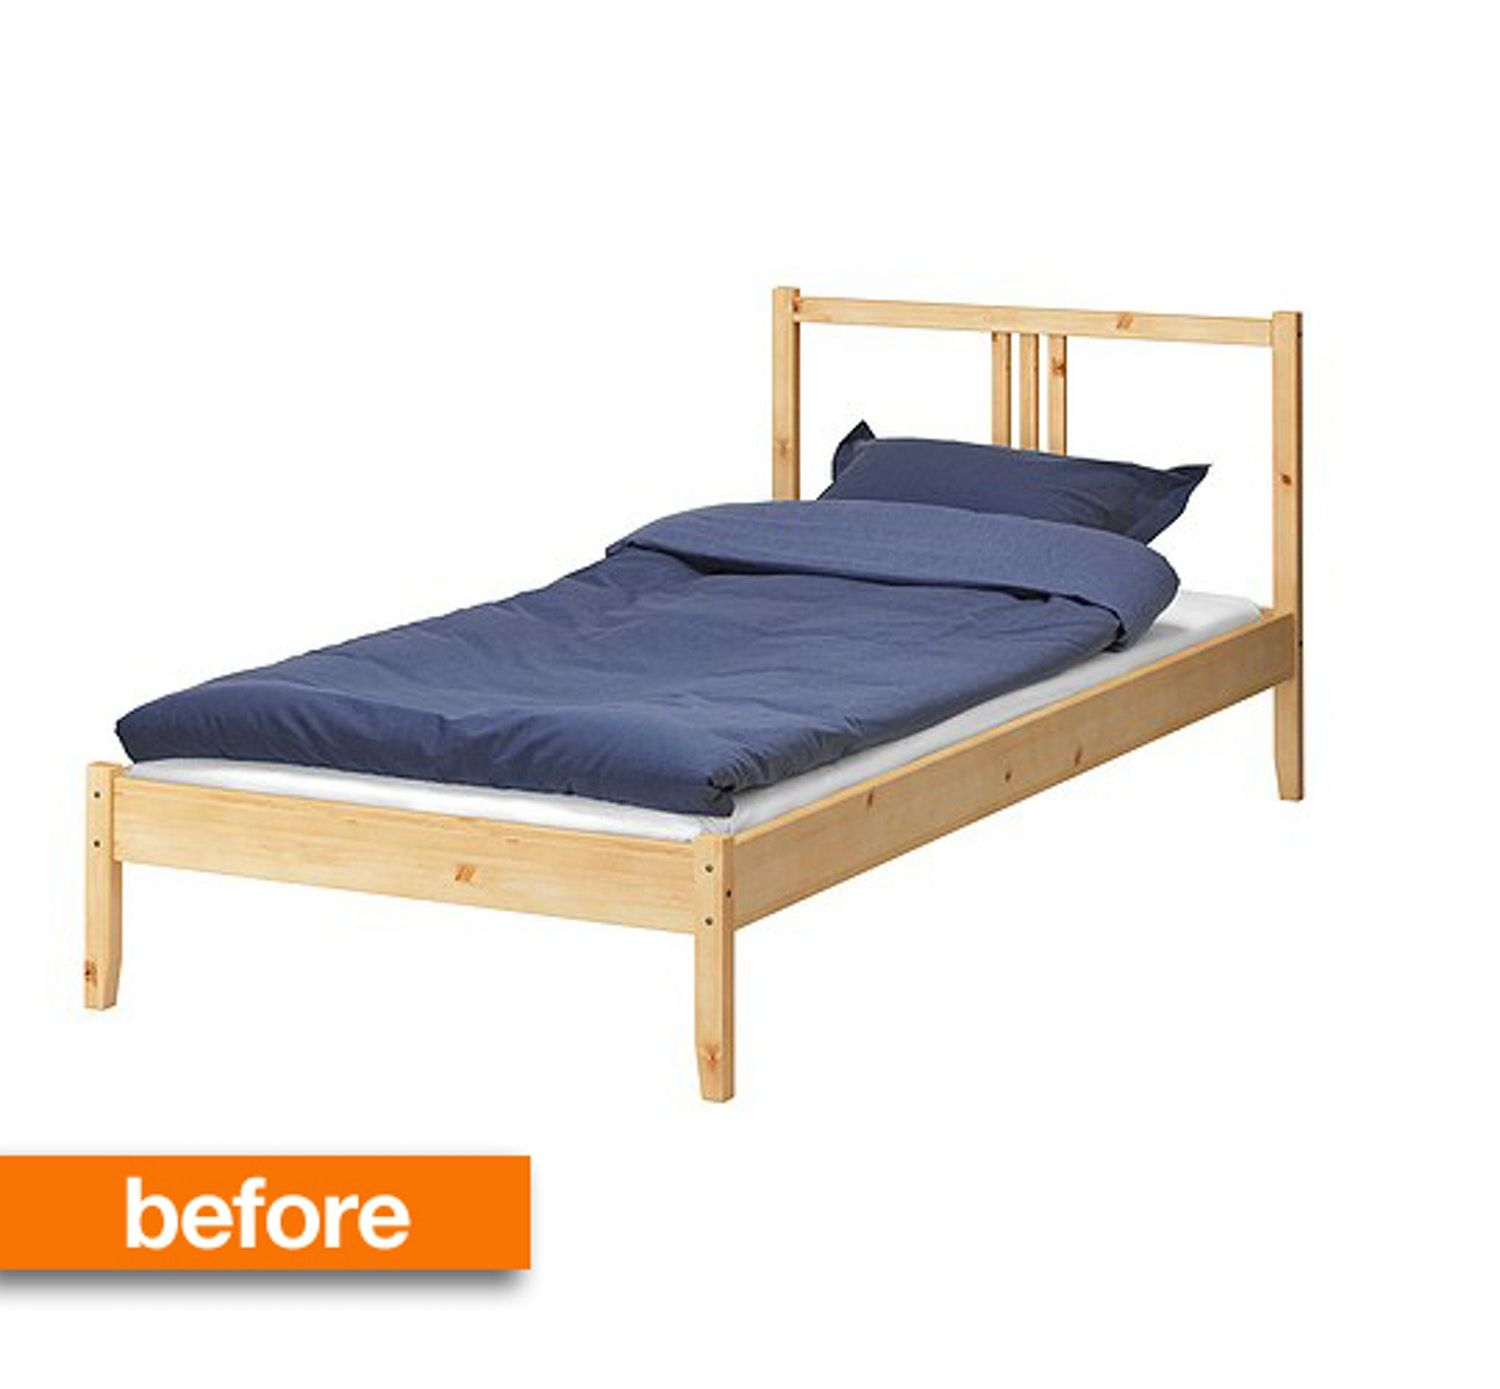 Ikea Simple Bed